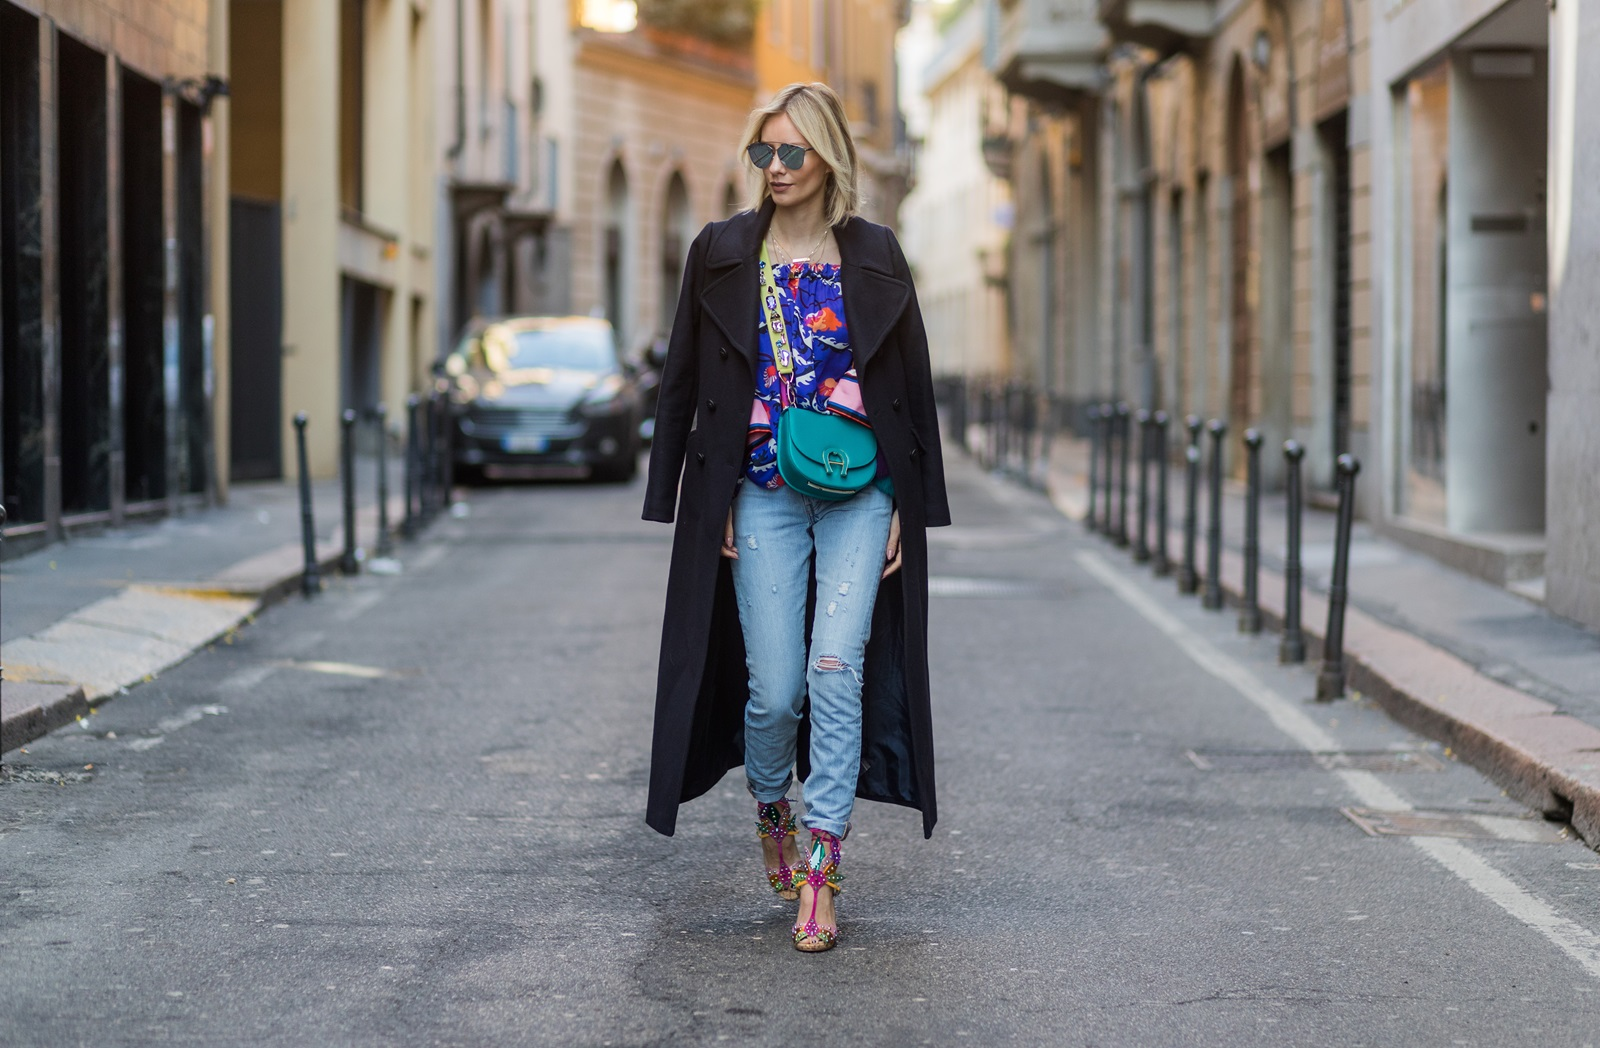 MILAN, ITALY - FEBRUARY 26: Lisa Hahnbueck wearing Hallhuber Maxi Coat, EMILIO PUCCI PRINTED SILK BLOUSE, LEVI´S 501 SKINNY, AIGNER PINA BAG WITH AIGNER STRAP WITH RHINESTONES, CHRISTIAN LOUBOUTIN Venenana Multi, Prada Sunglasses during Milan Fashion Week Fall/Winter 2017/18 on February 26, 2017 in Milan, Italy. (Photo by Christian Vierig/Getty Images) *** Local Caption *** Lisa Hahnbueck